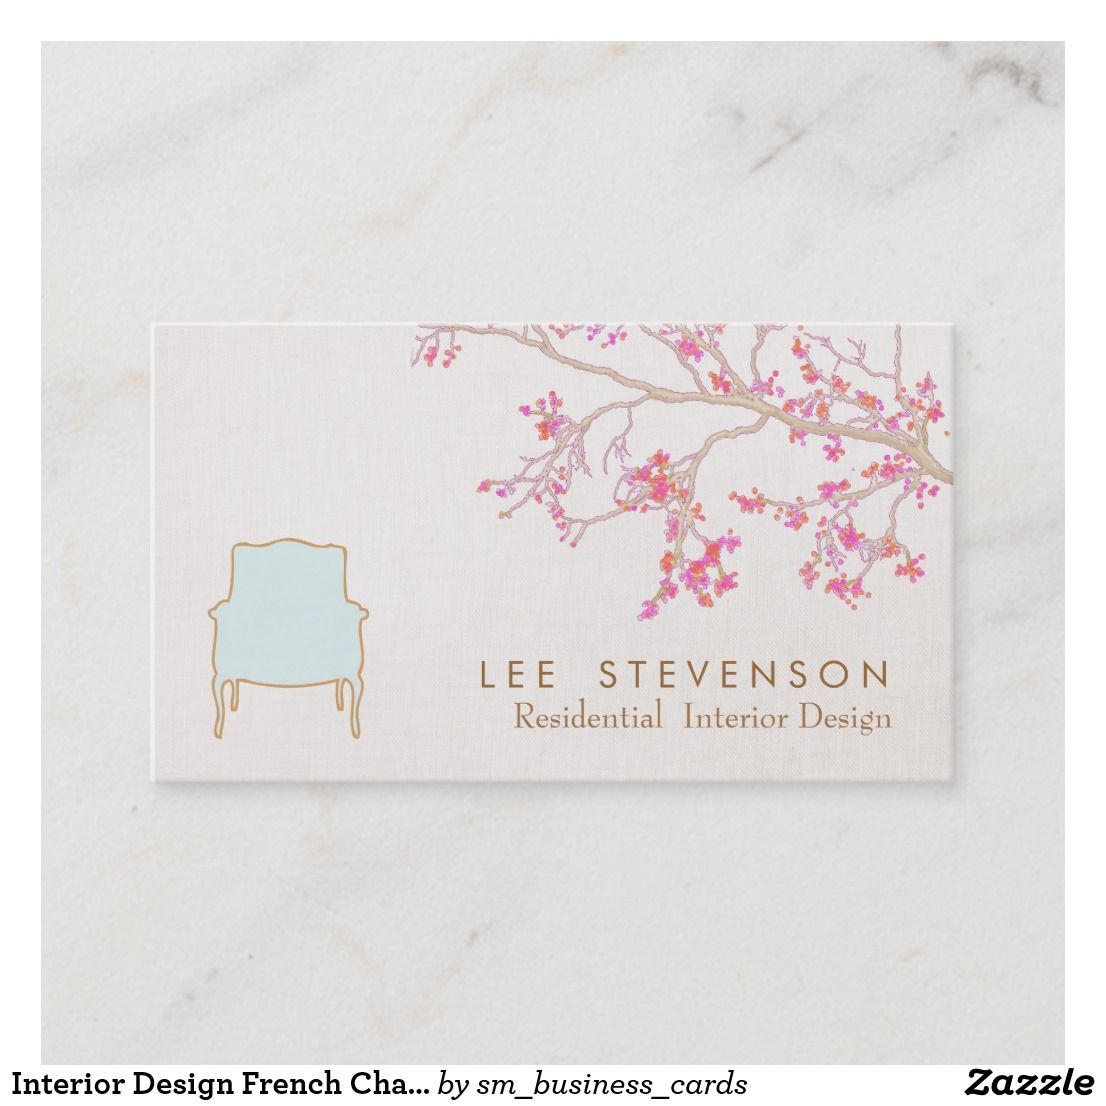 Interior design french chair staging decorator business card elegant shabby chic creative designer custom also rh in pinterest